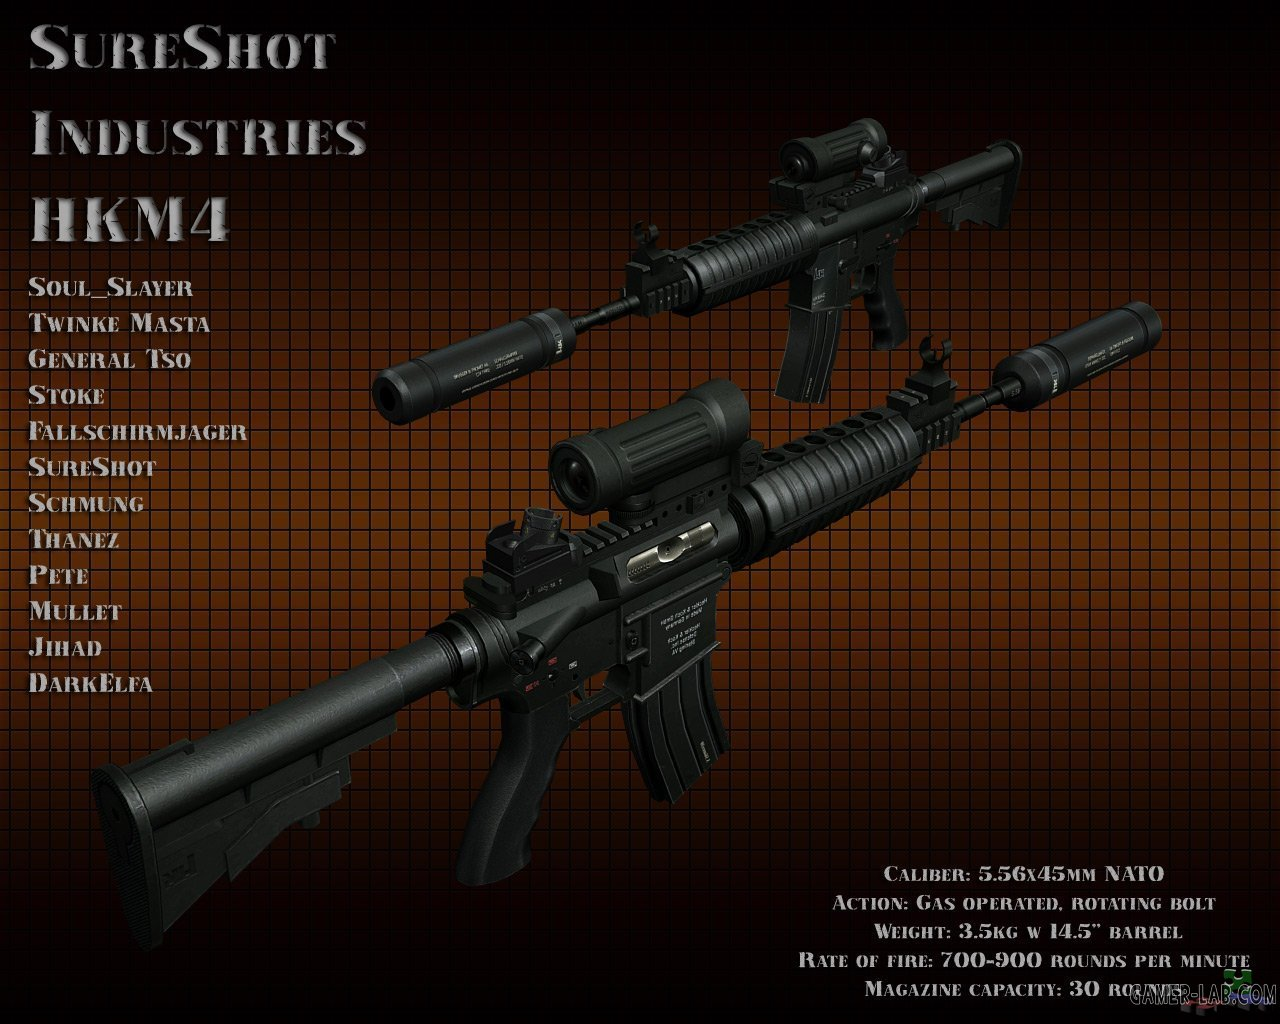 SureShot_Industries_HKM4